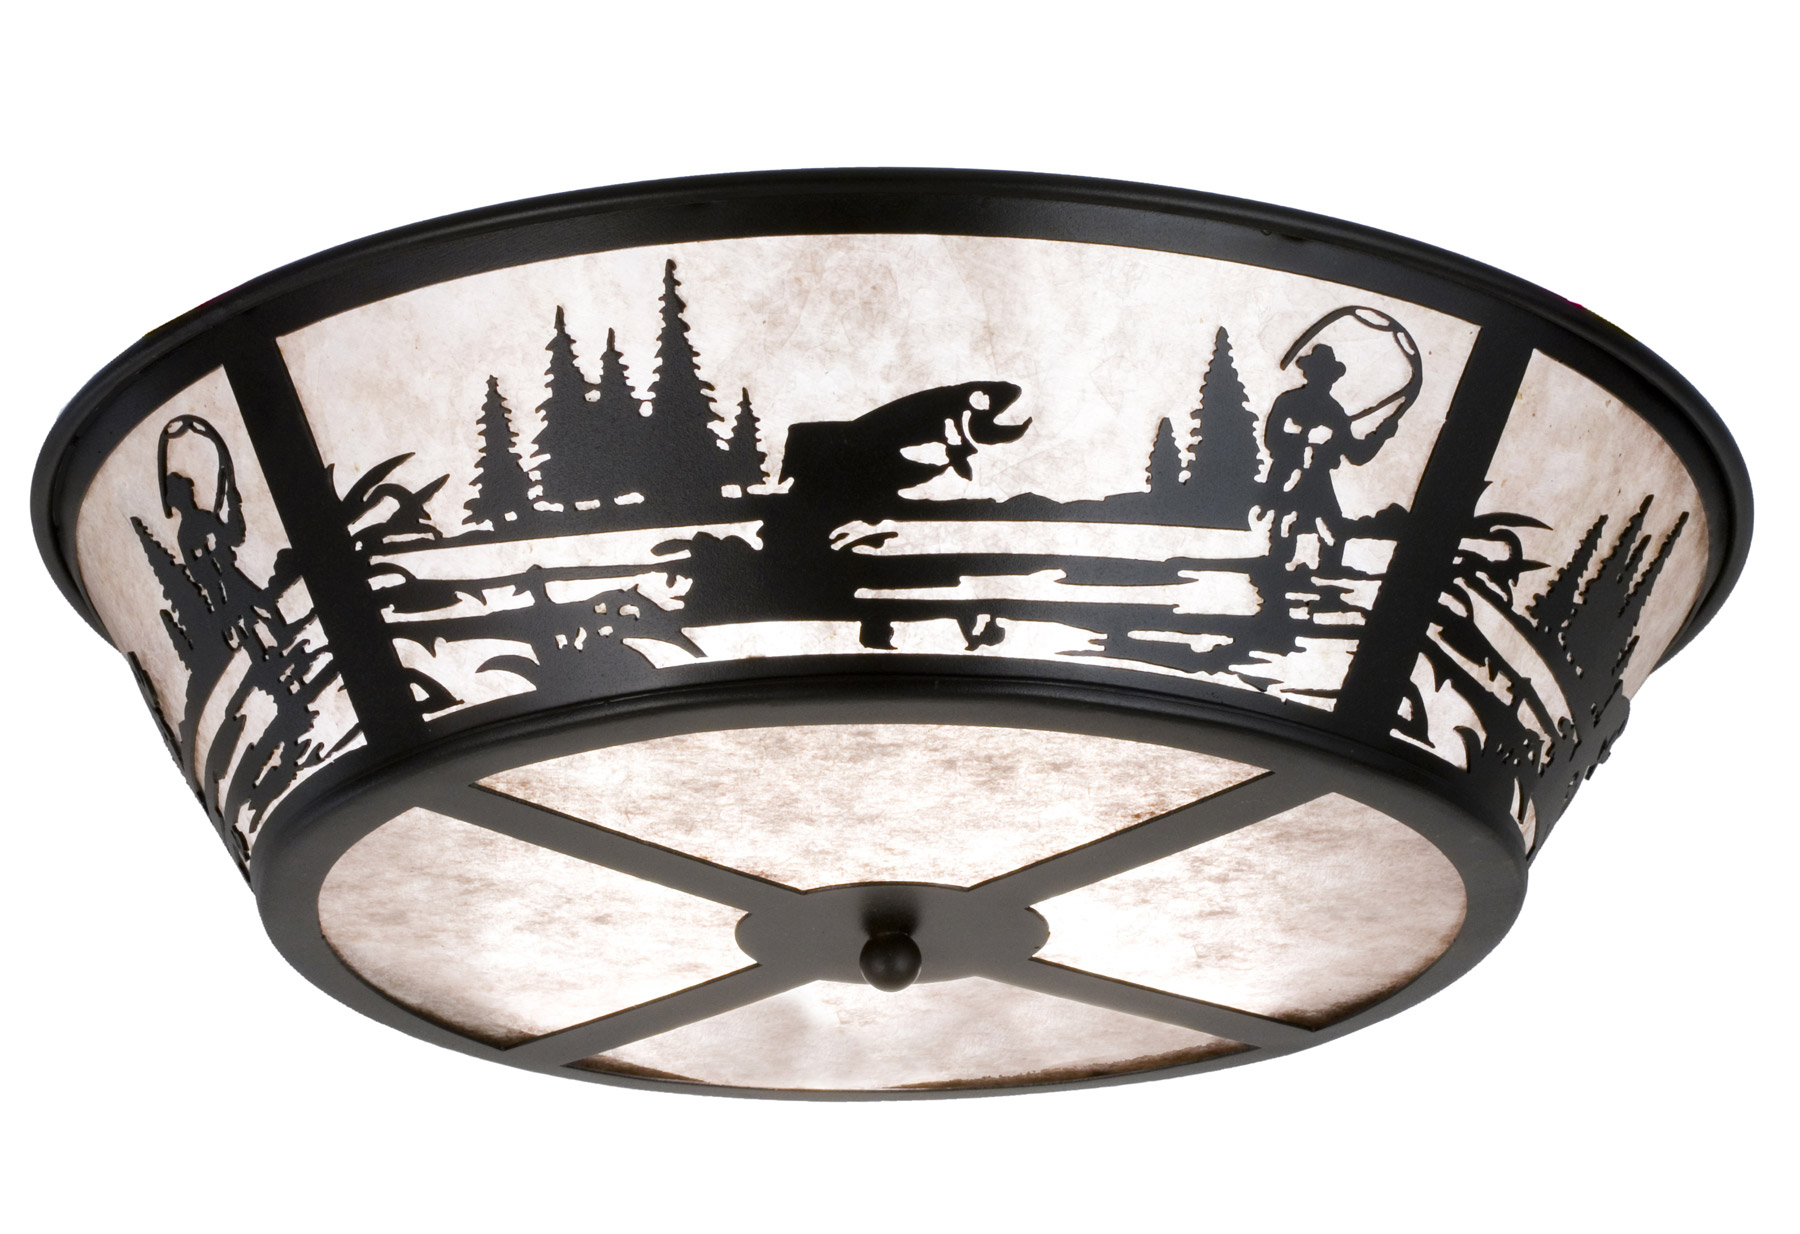 Meyda 26222 Fly Fishing Creek Flush Mount Ceiling Fixture